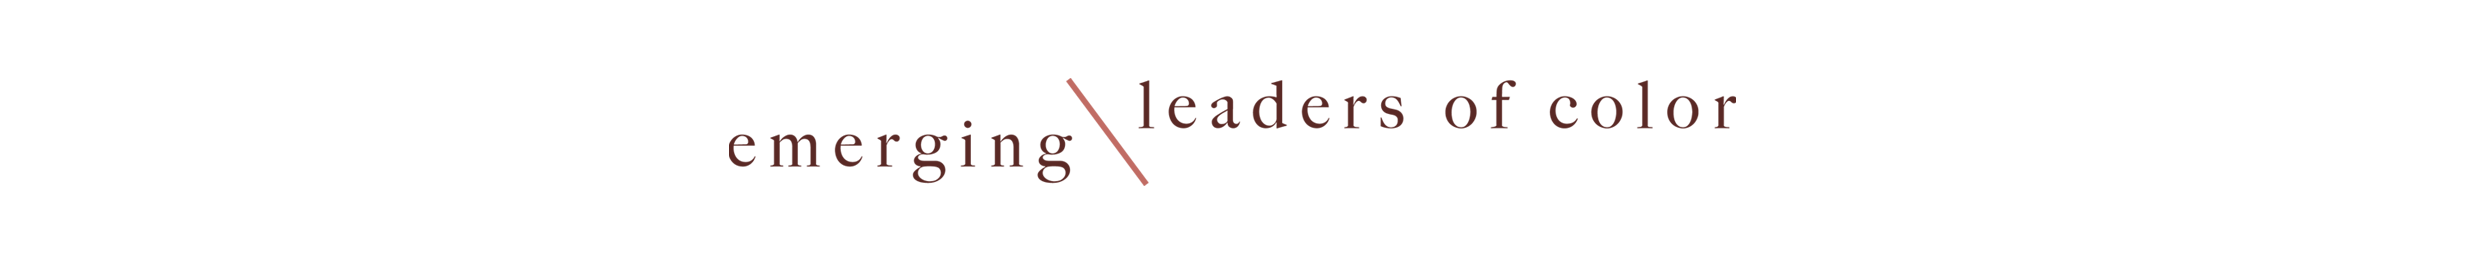 Arts Leaders of Color